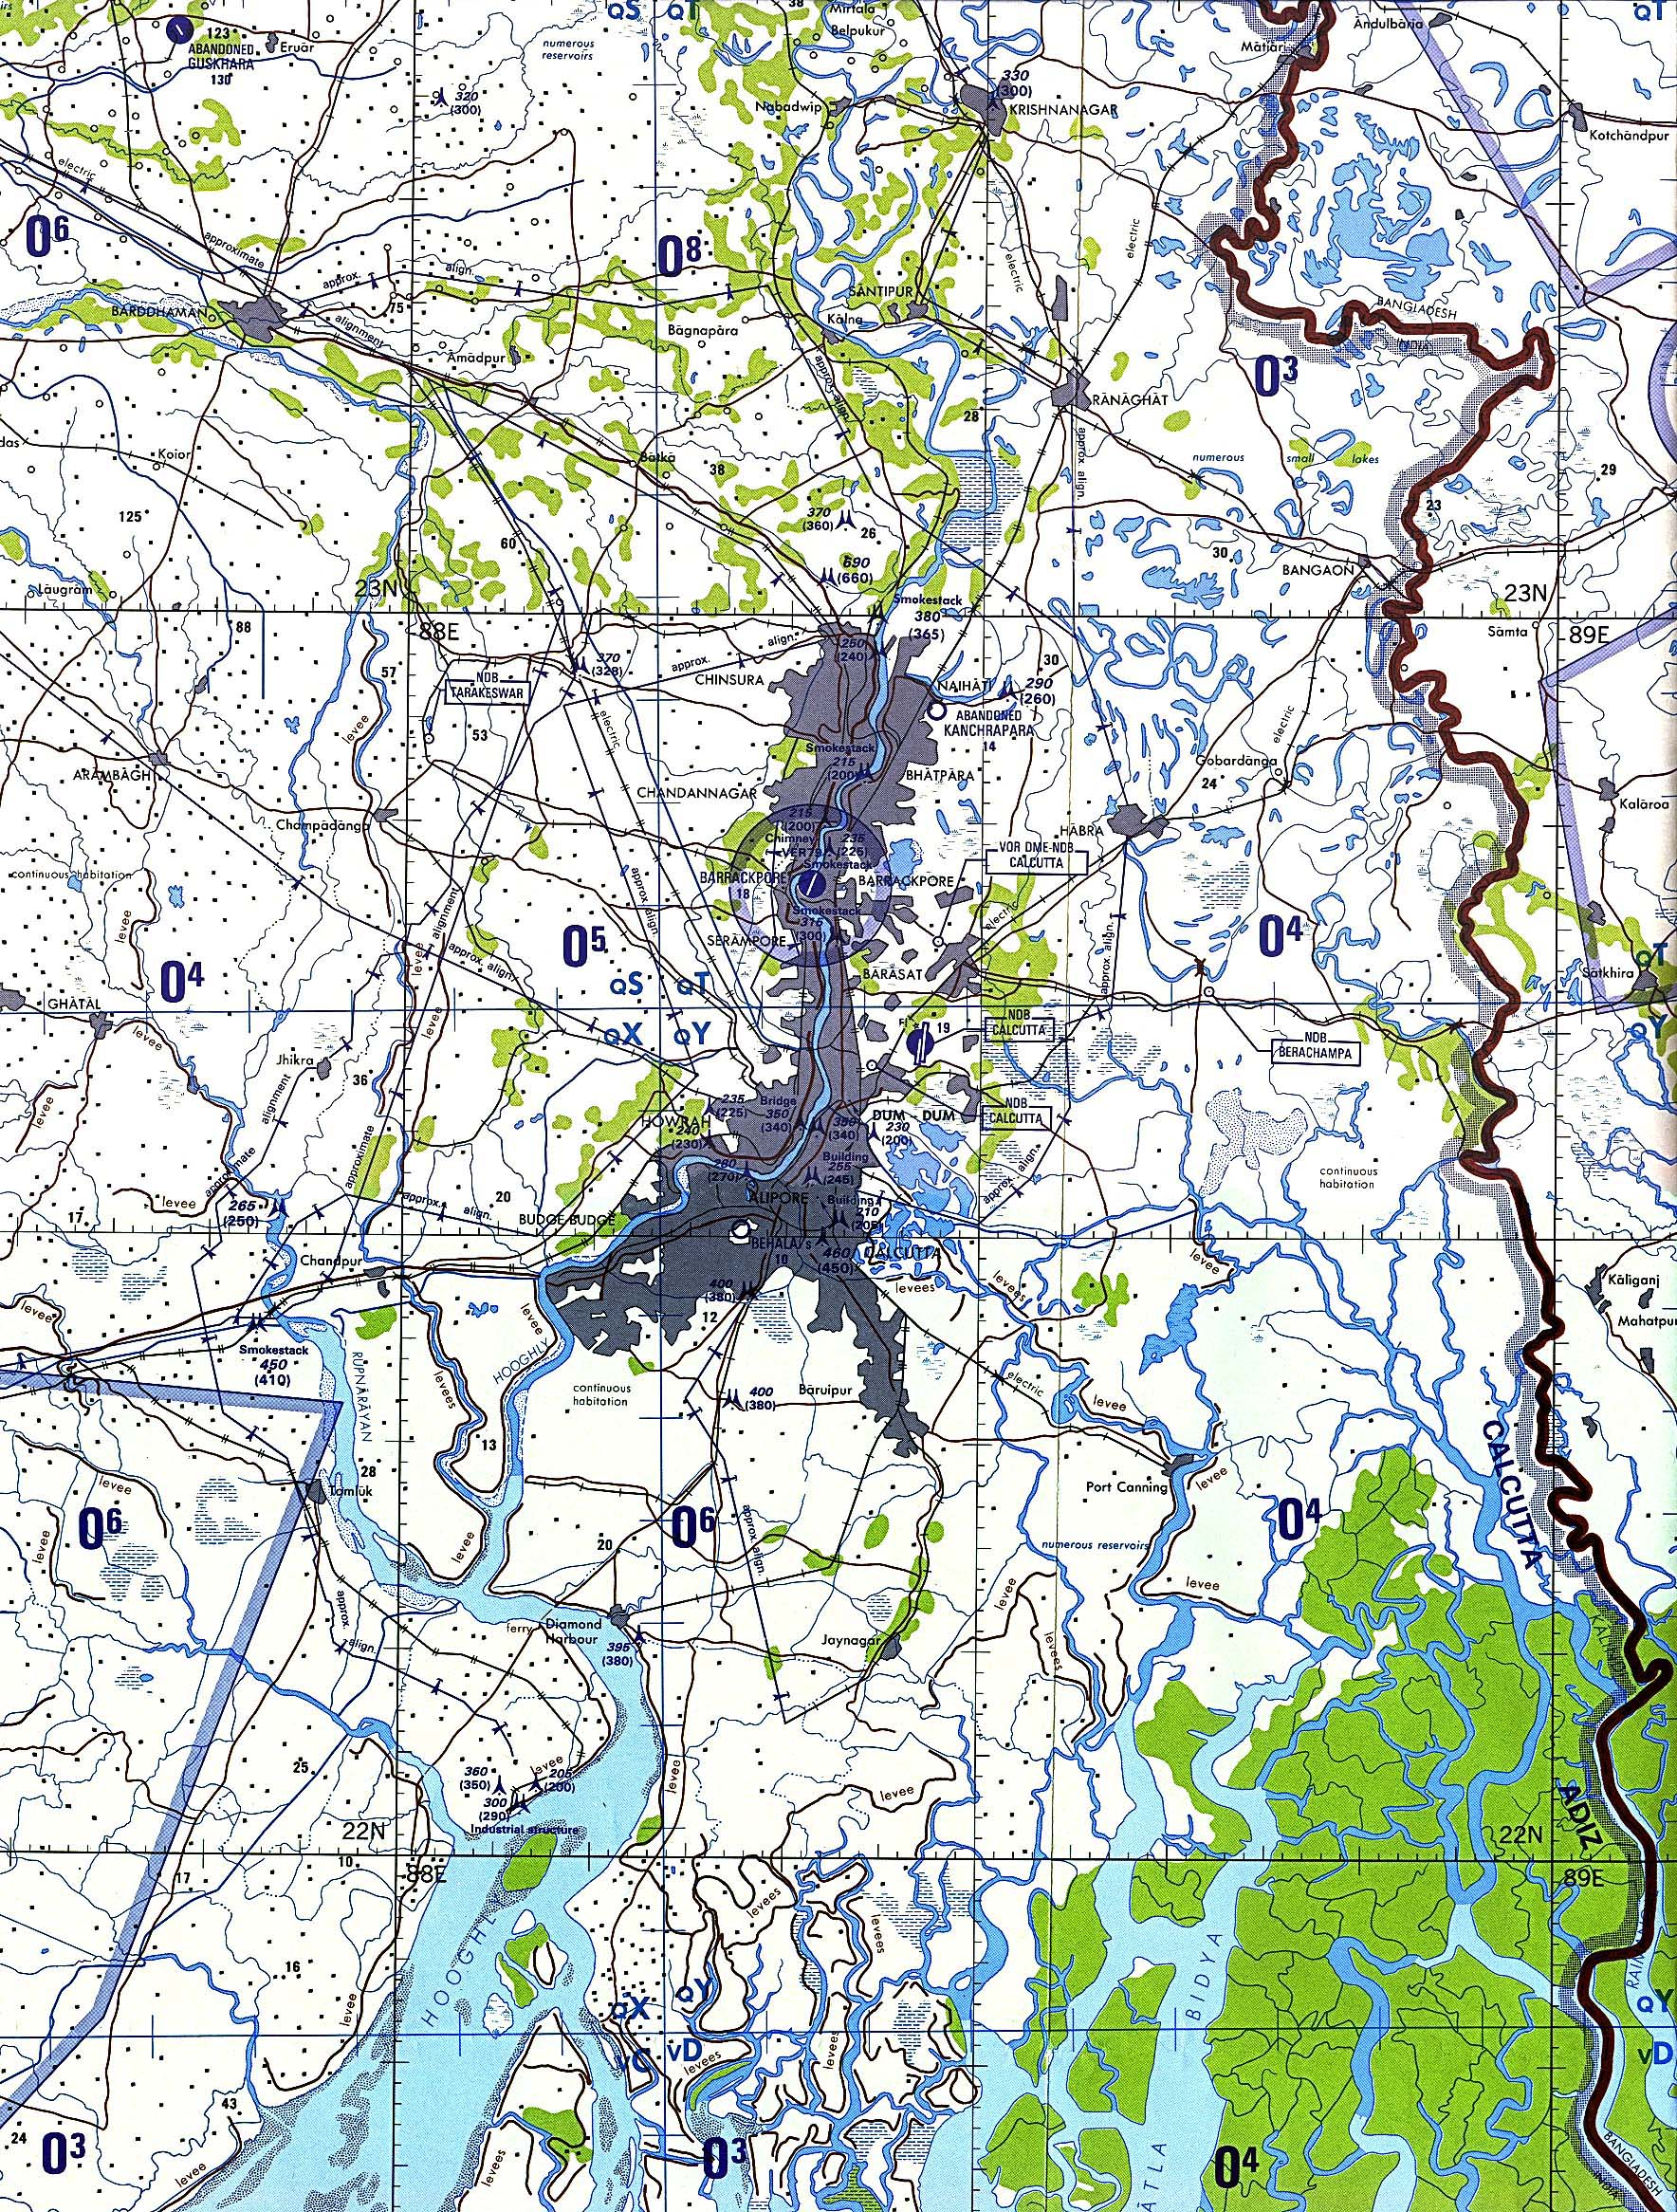 Map Of India , Calcutta (tactical pilotage chart) original scale 1:500,000 Portion of Defense Mapping Agency TPC J-9B 1991 (1.46 MB) Not for navigational use